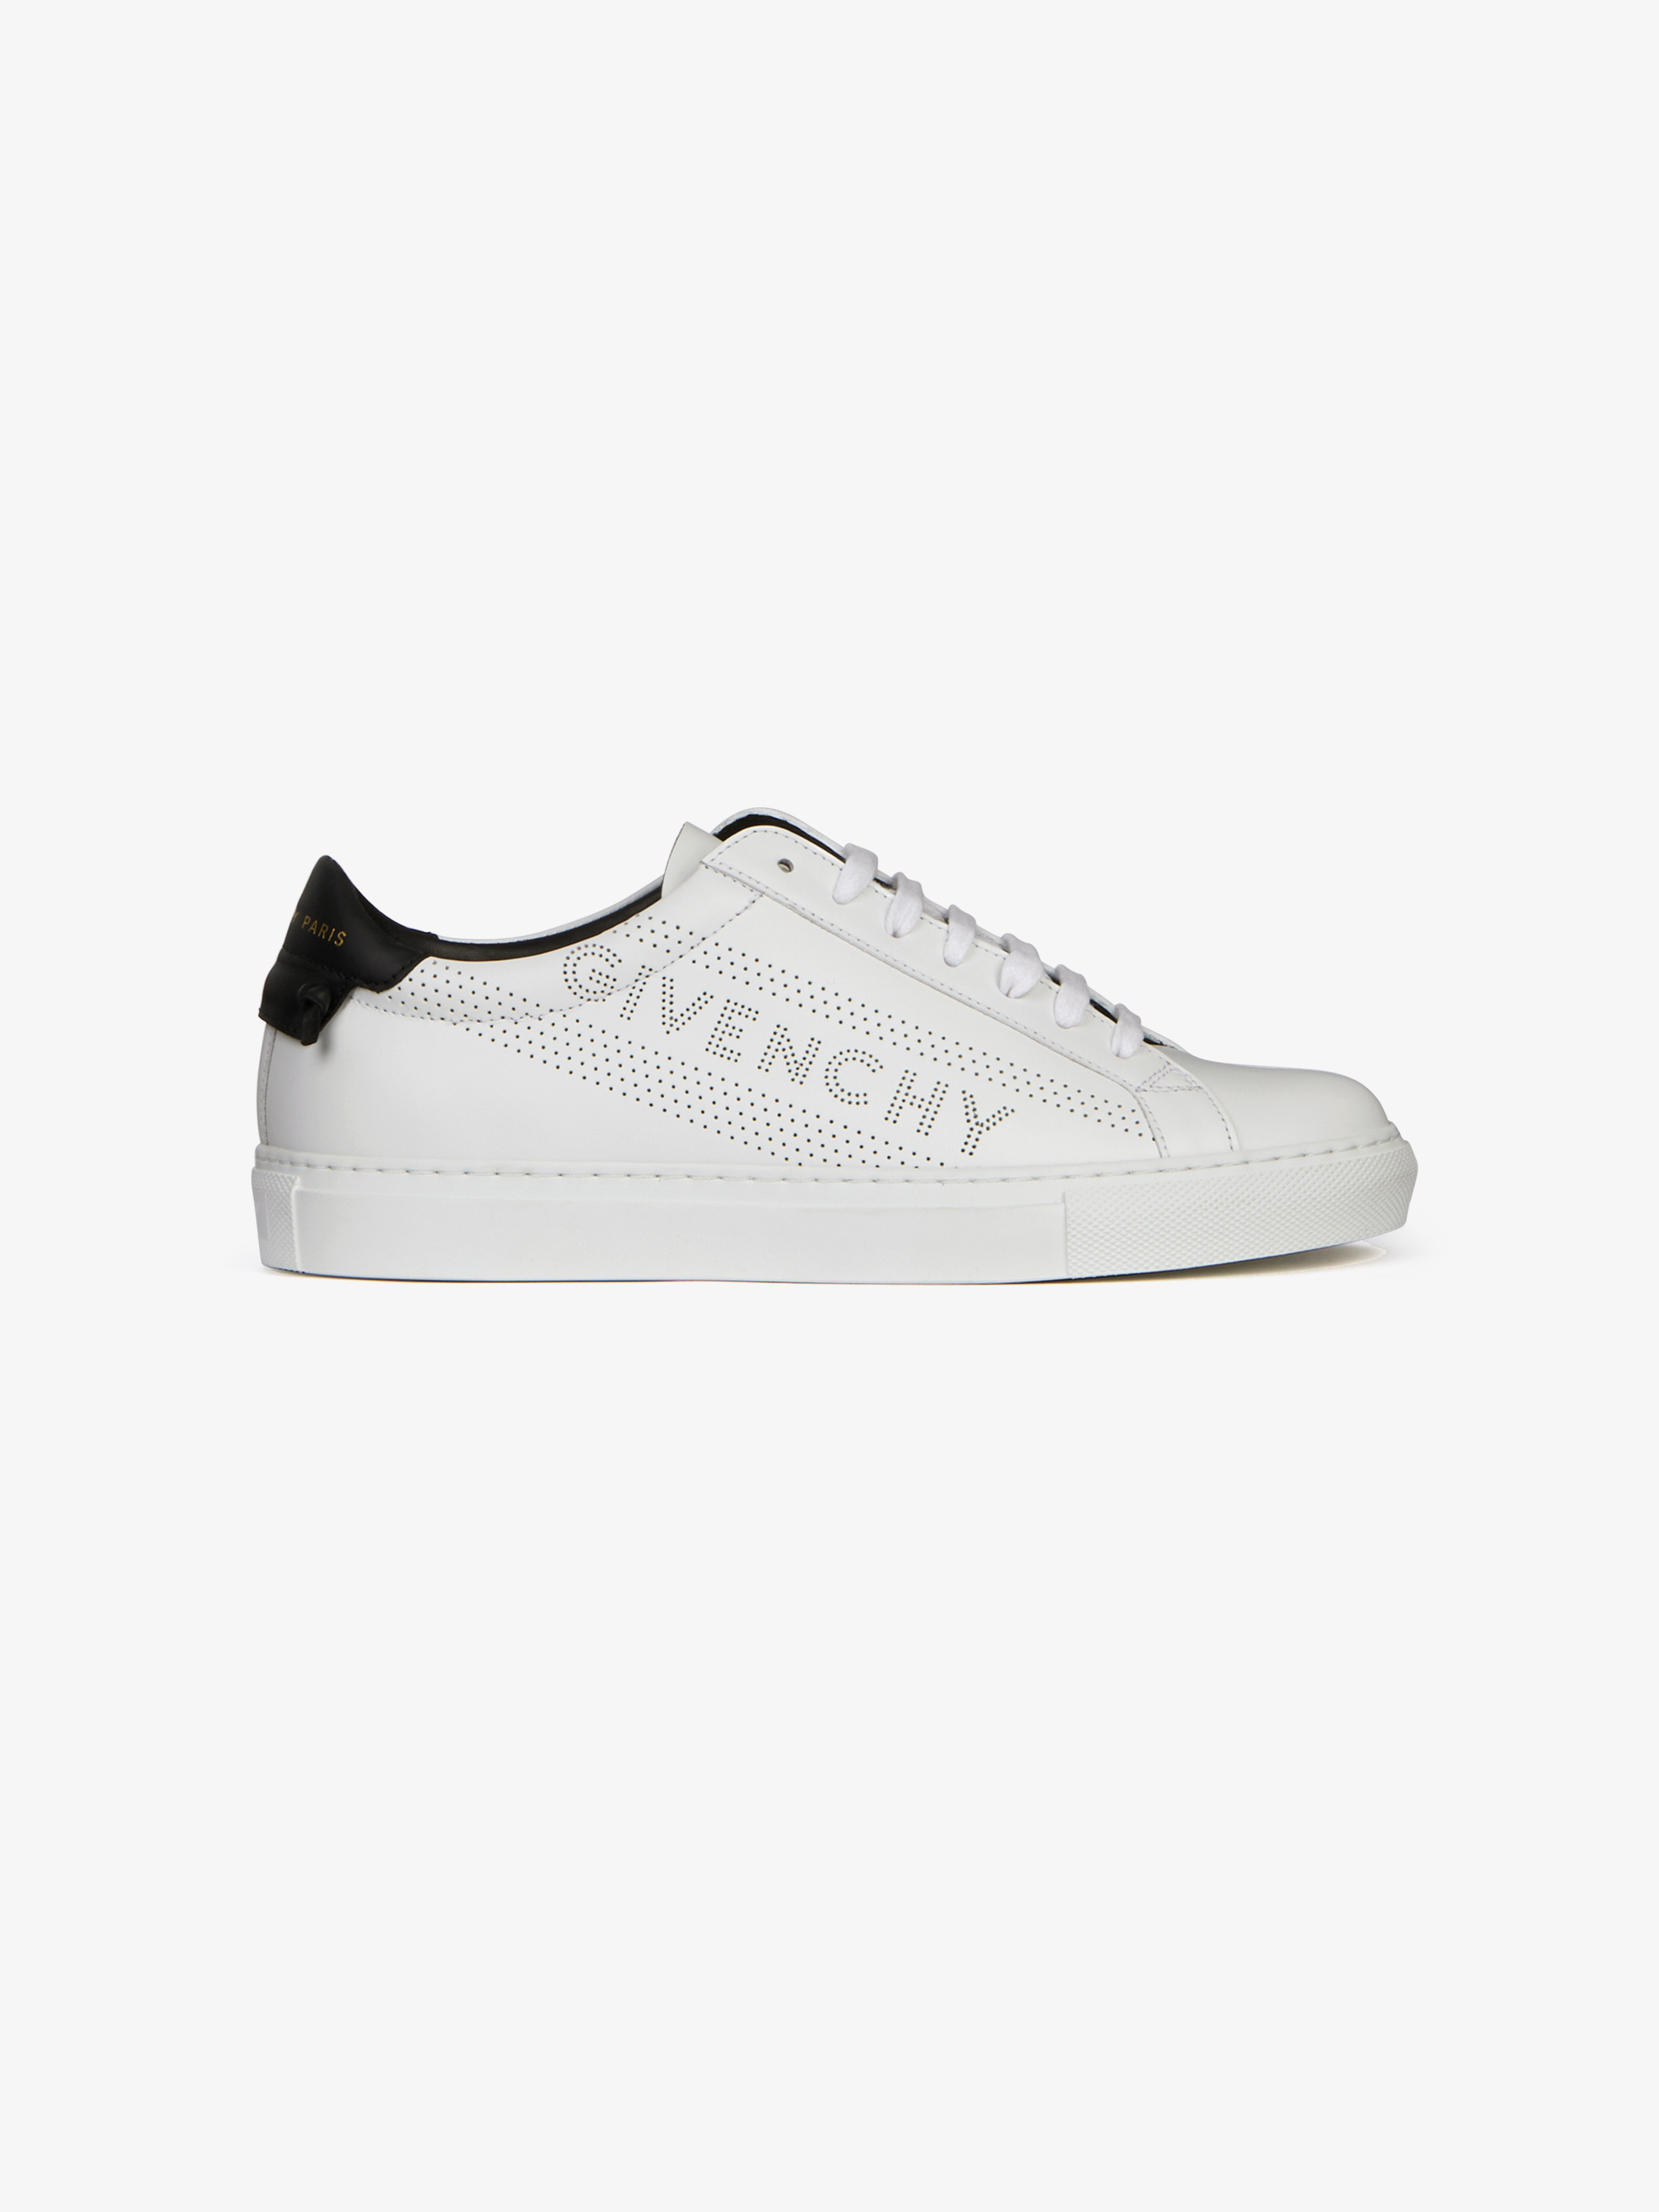 Givenchy Perforated Sneakers In Leather Givenchy Paris